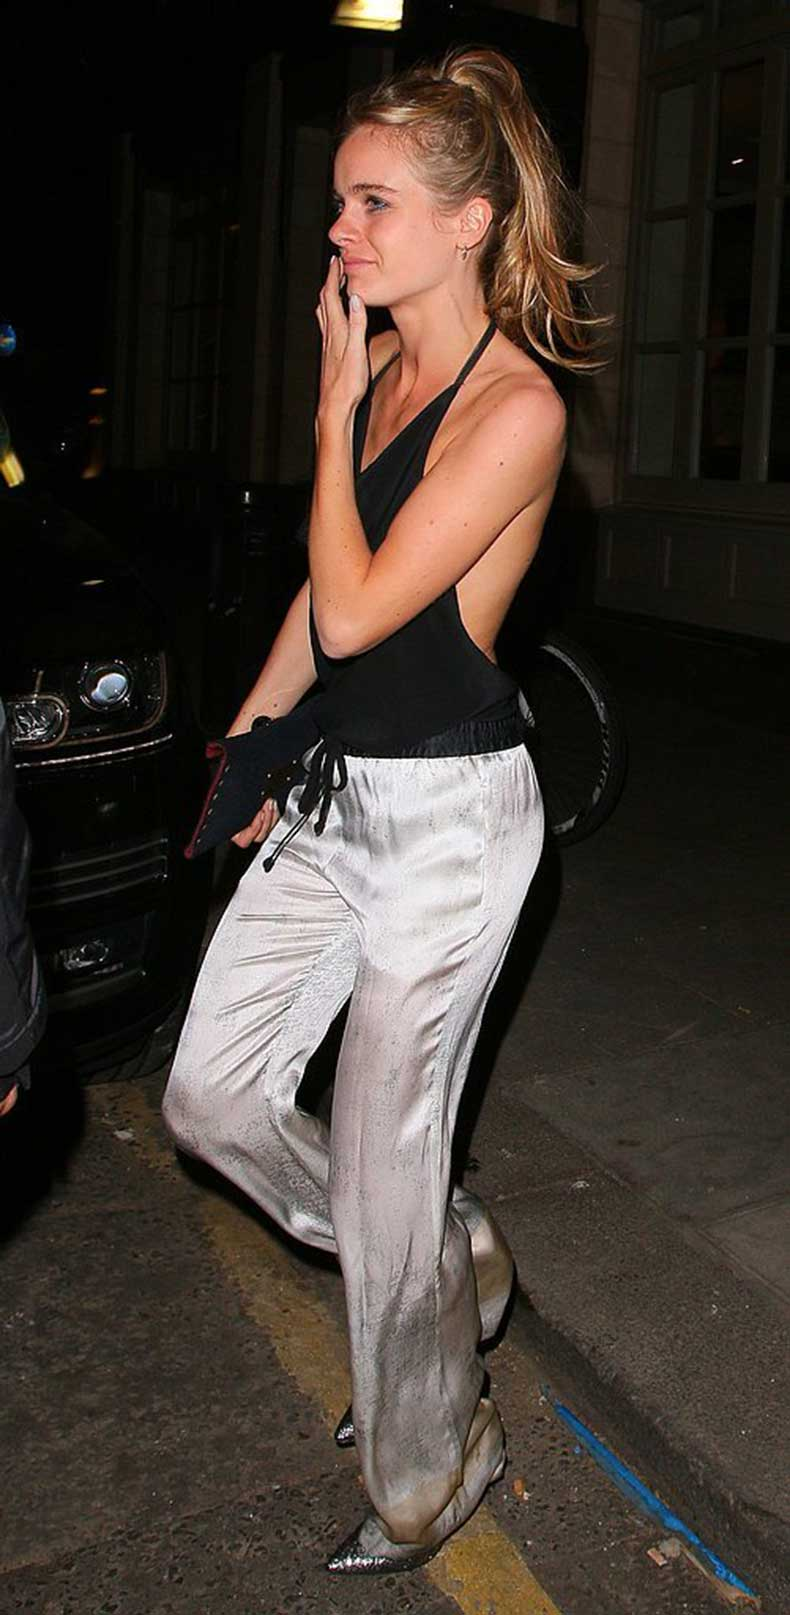 Cressida-Knows-When-Tie-Up-Her-Hair-End-Night